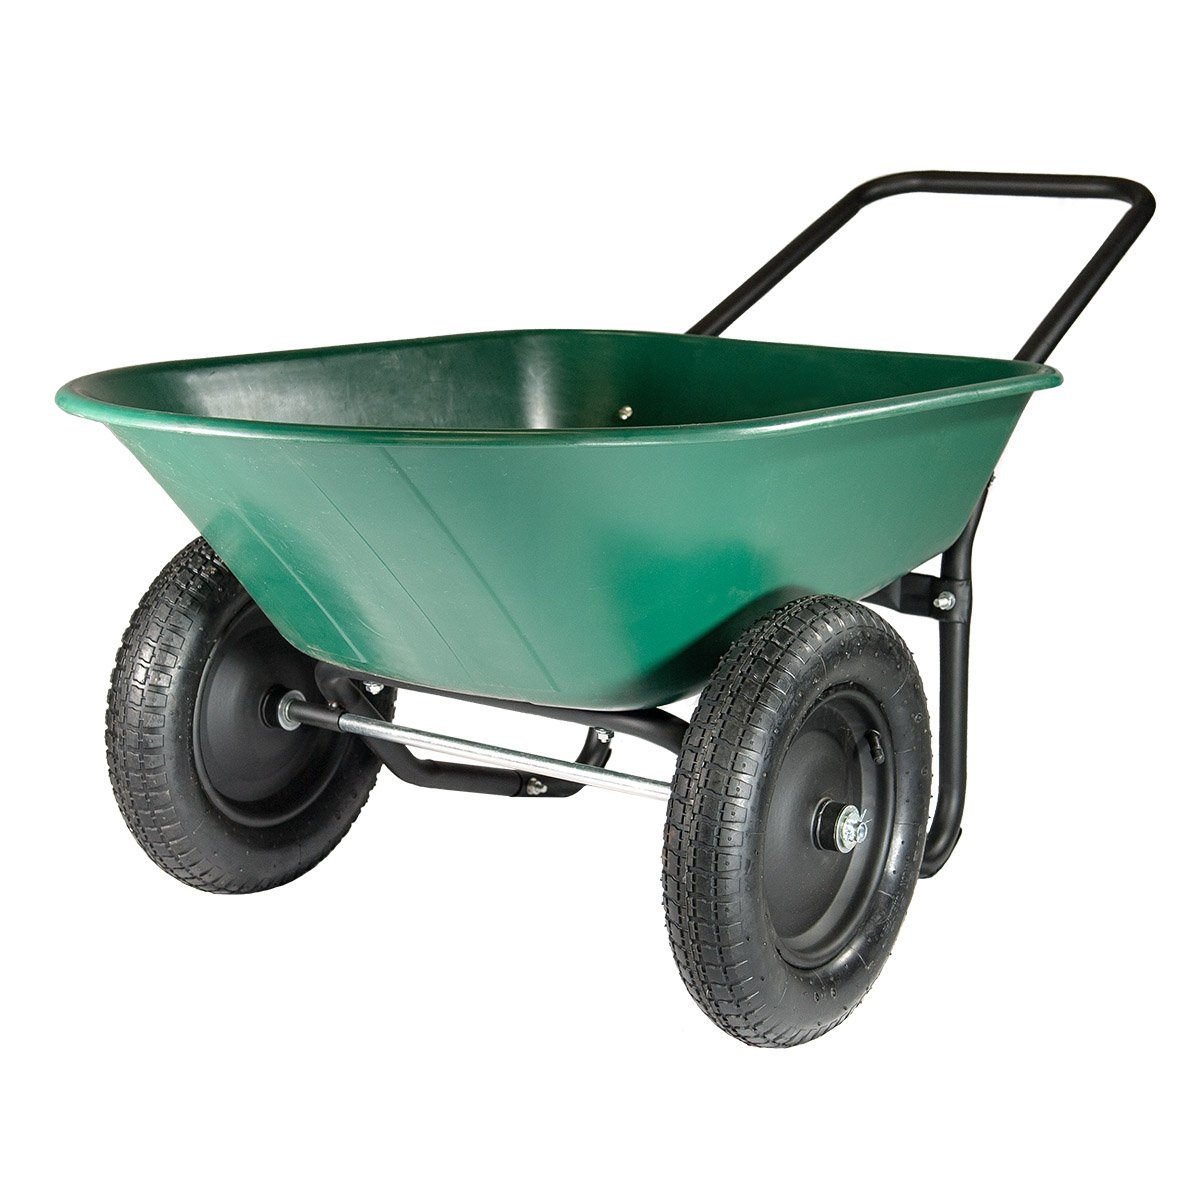 Marathon Yard Rover – 2 Tire Wheelbarrow Garden Cart - Green/Black by Marathon